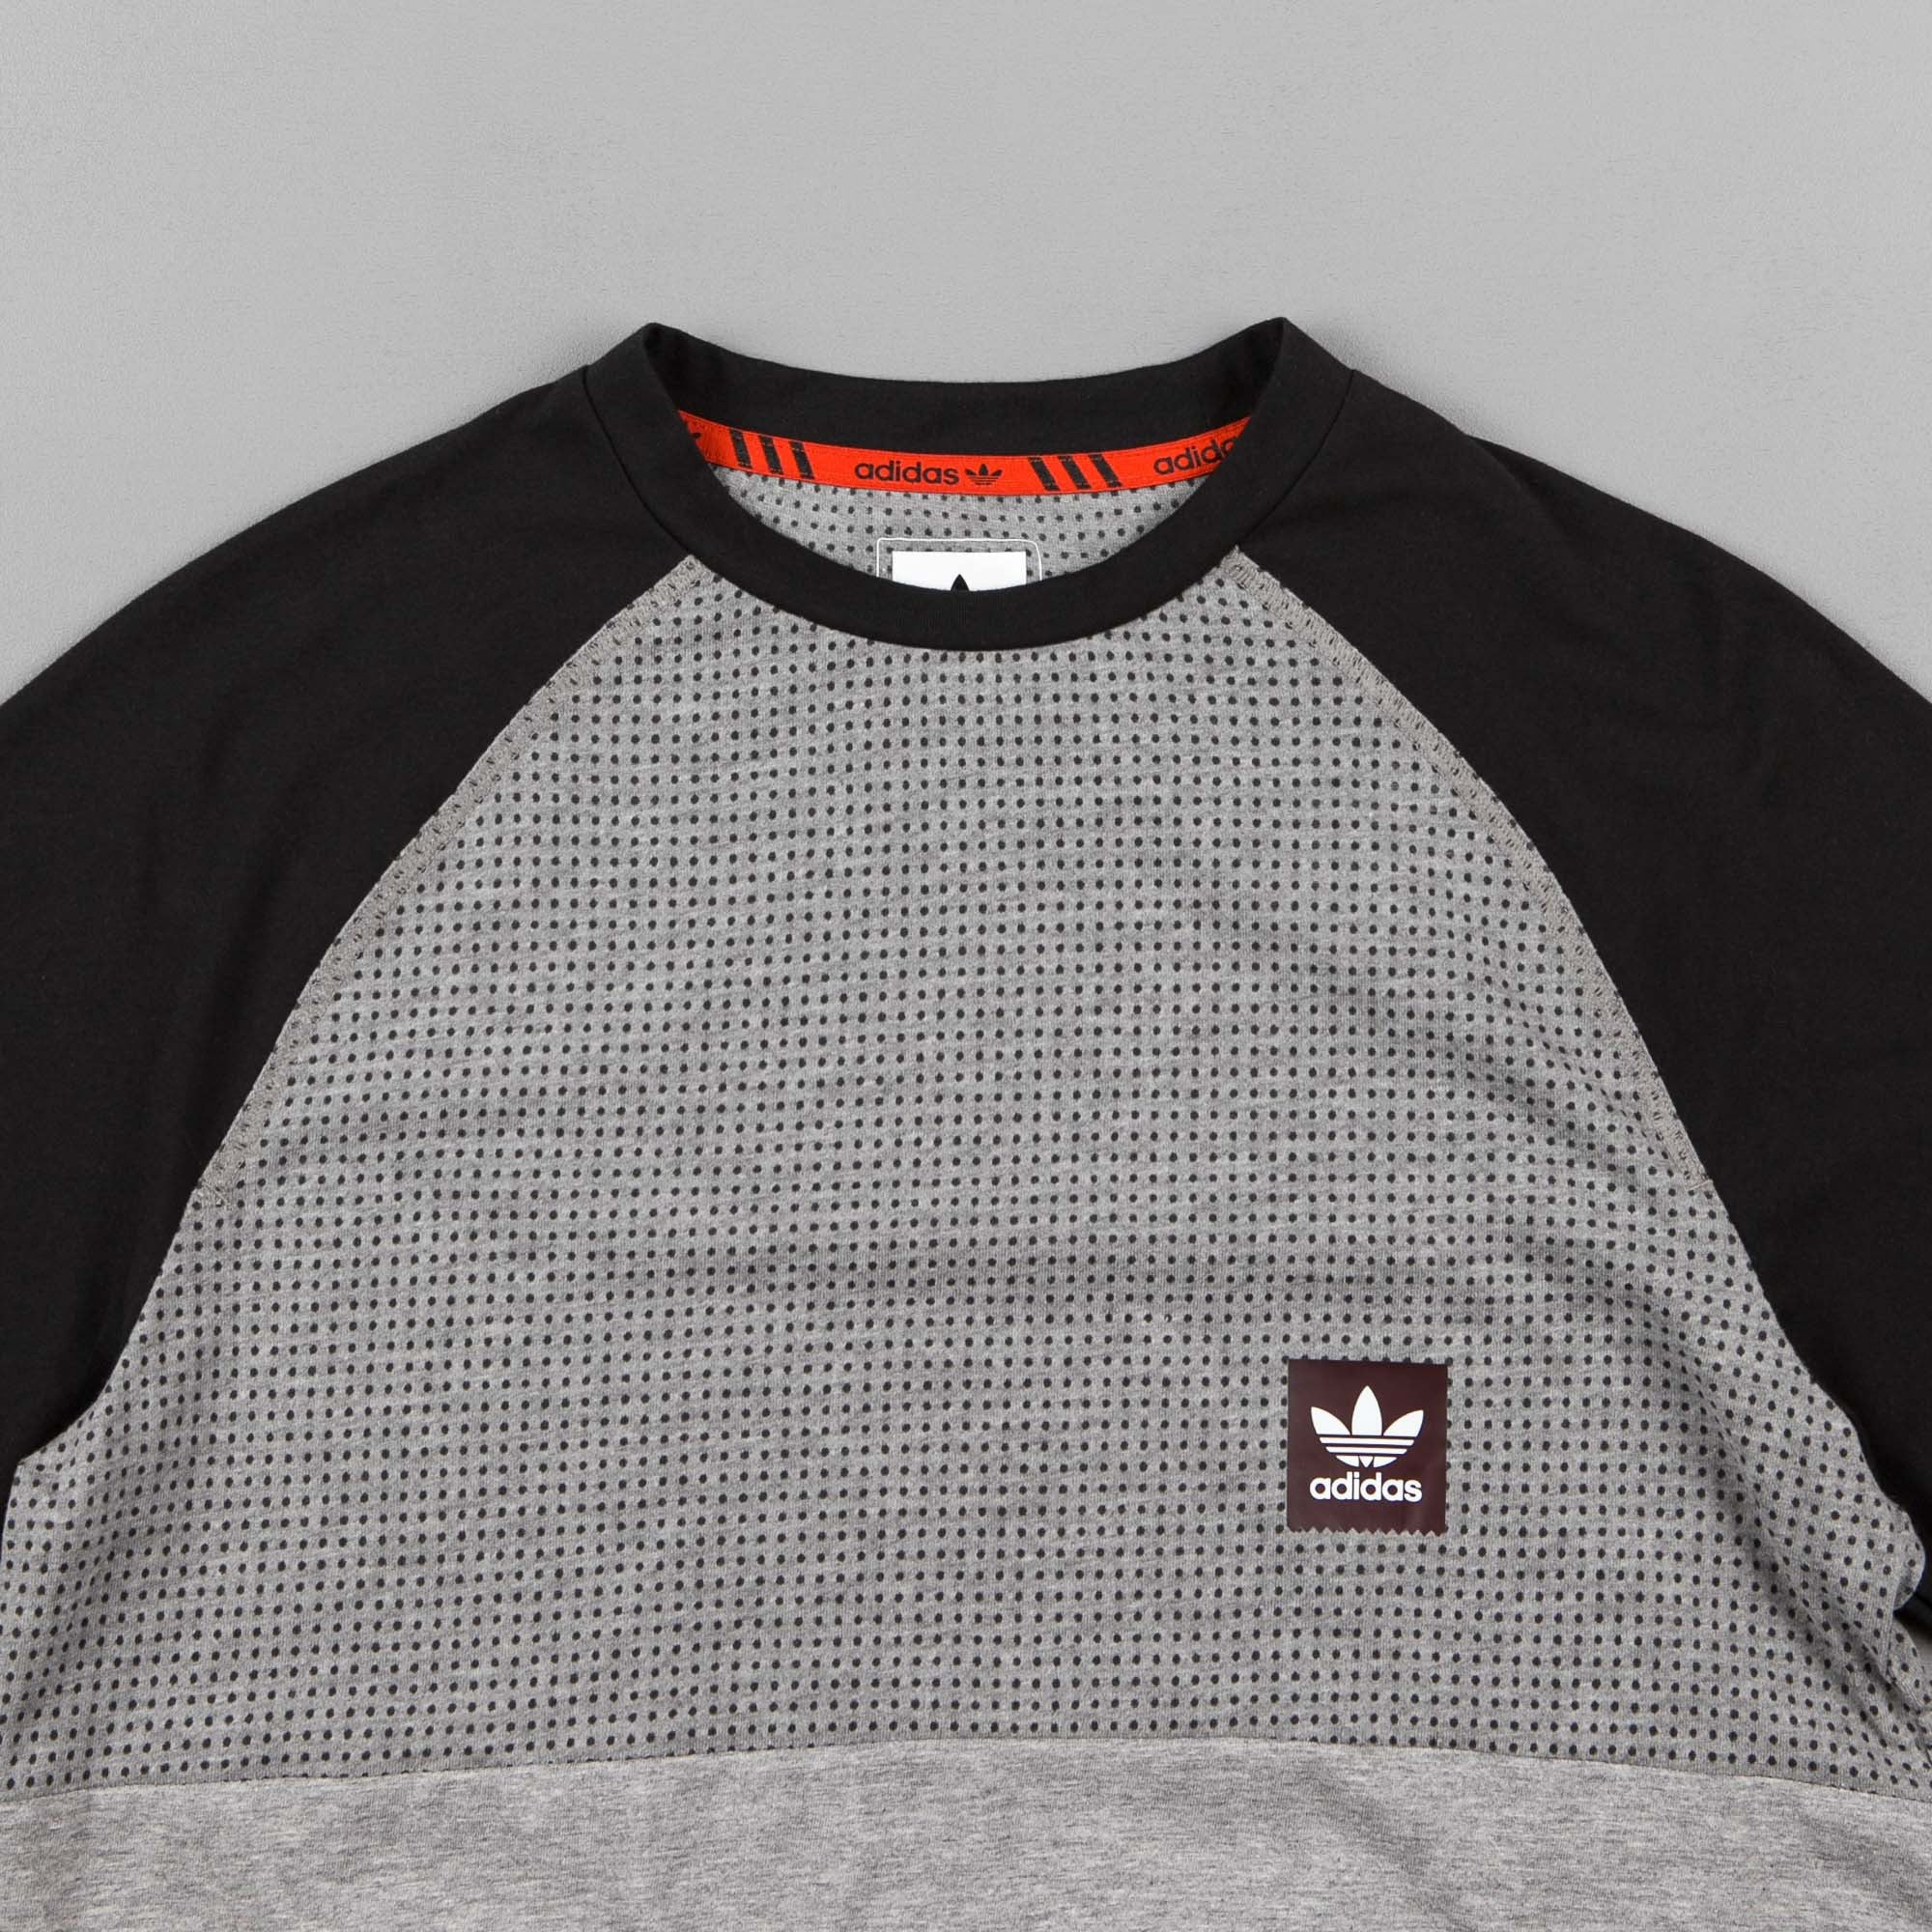 Adidas Aeroknit Raglan T-Shirt - Core Heather / Black